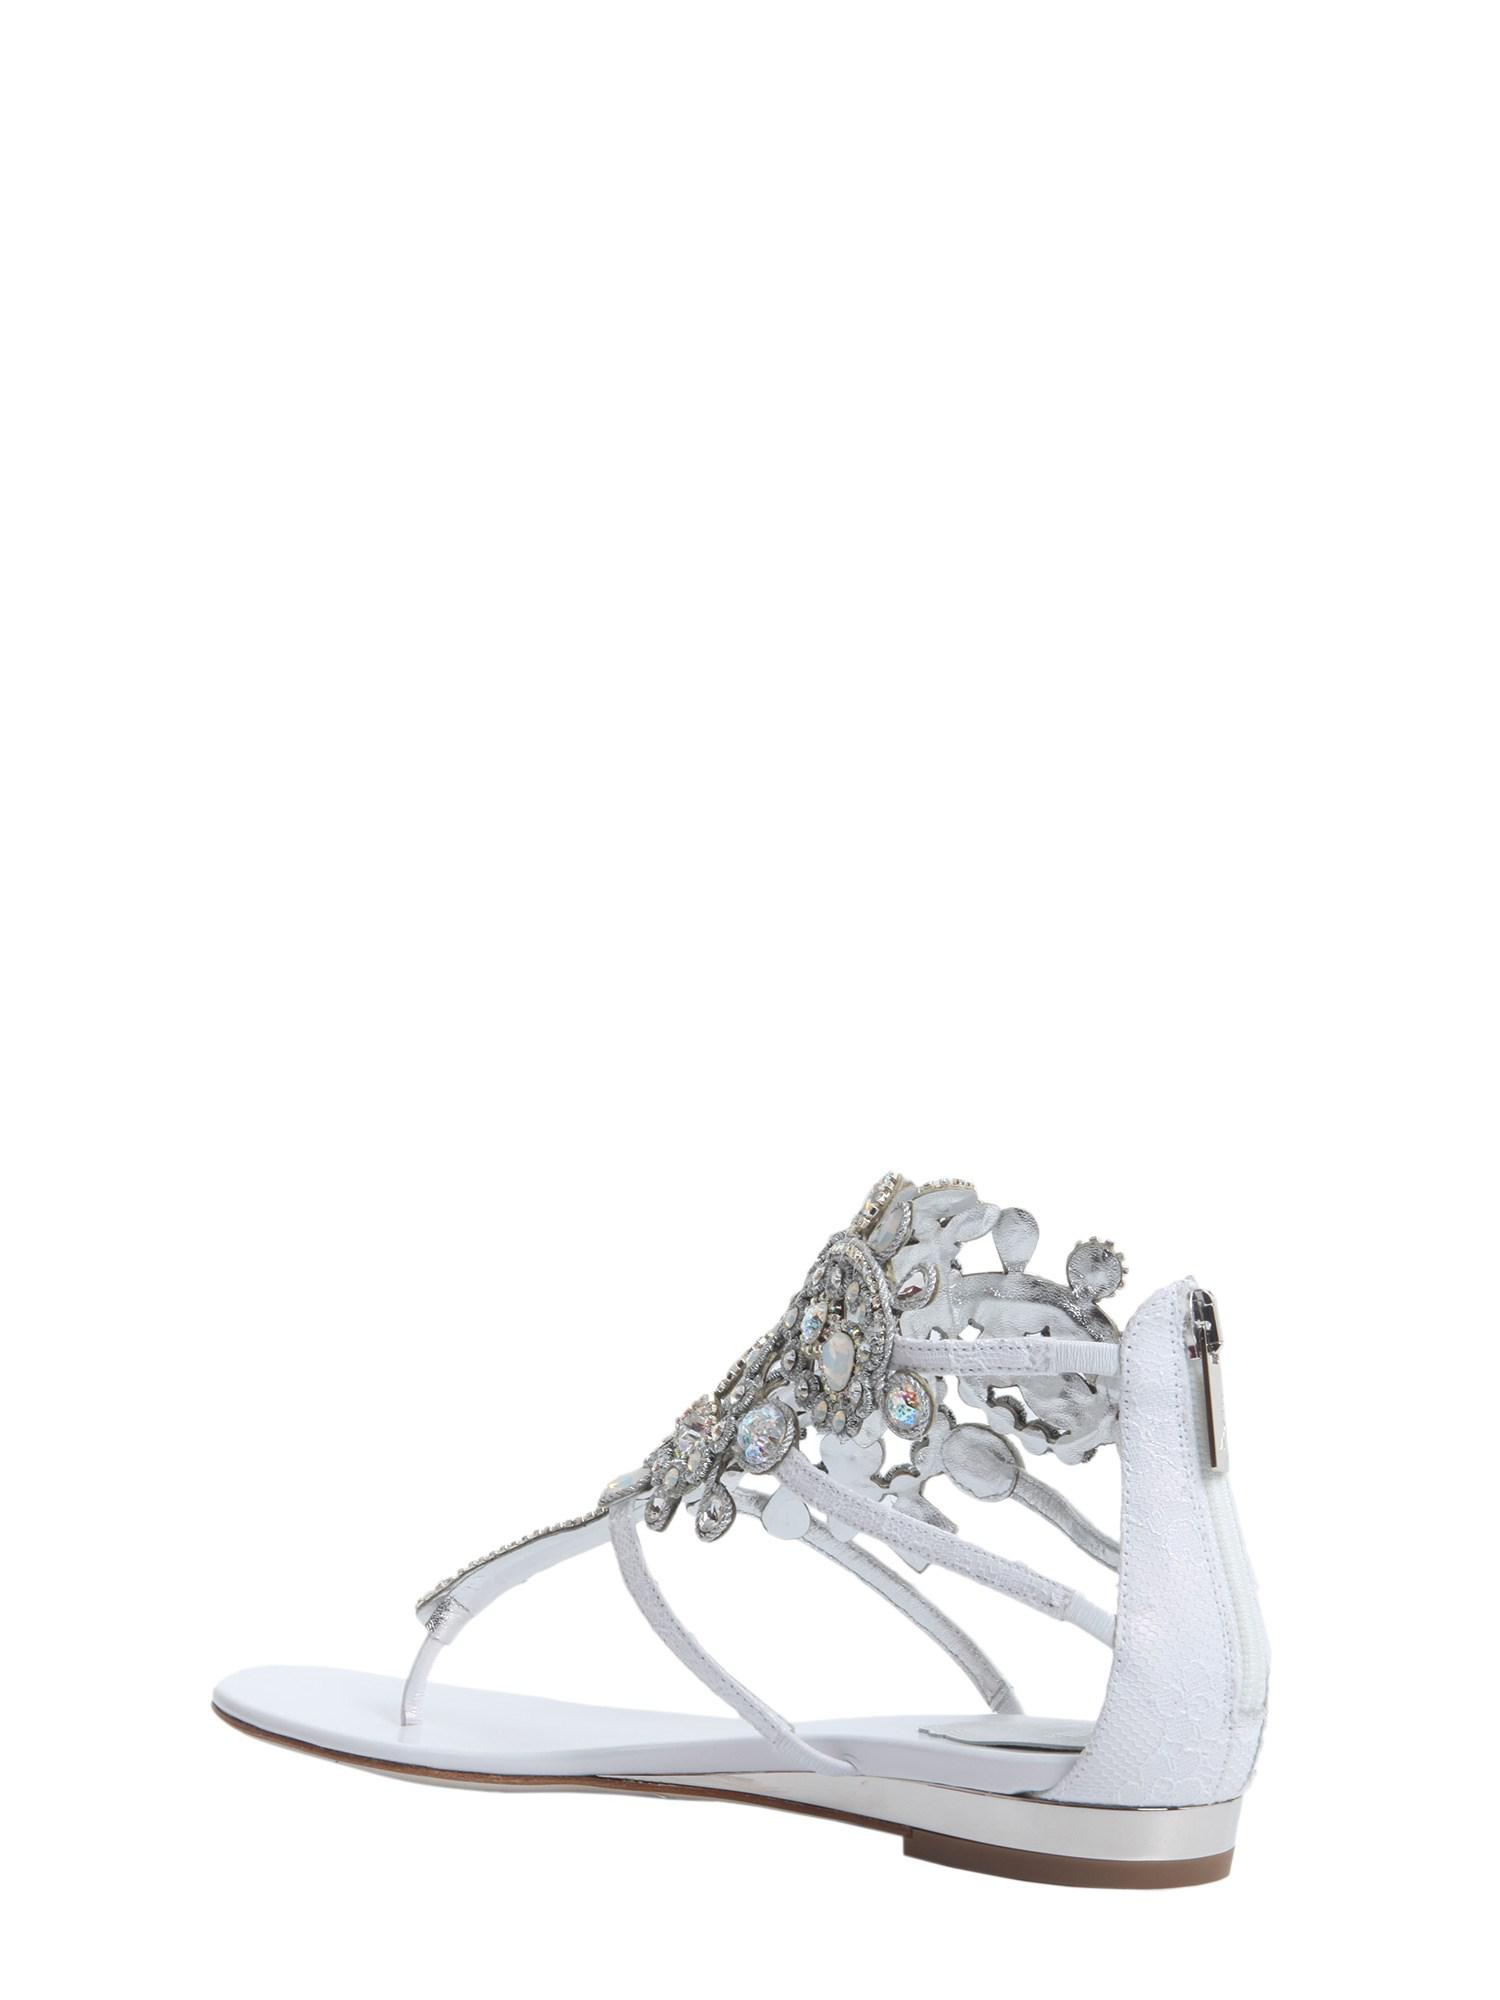 82be7f440a3 Rene Caovilla - White Crystal Embellished Leather Flips - Lyst. View  fullscreen